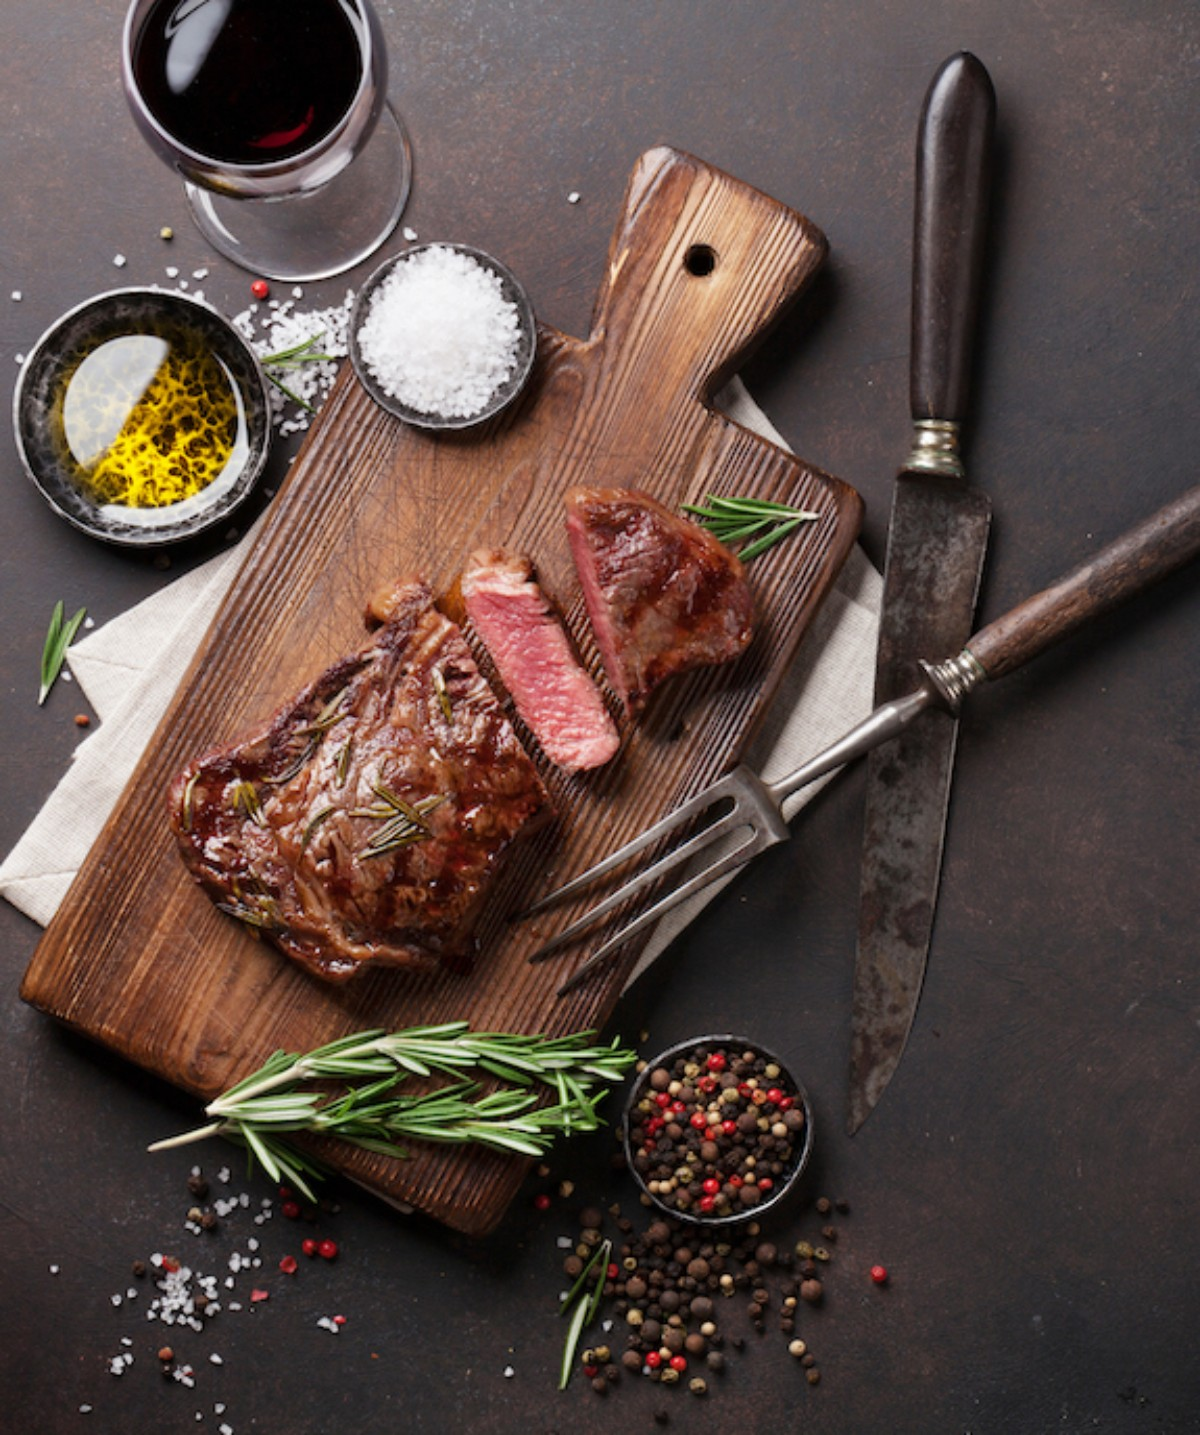 Steak on a cutting board